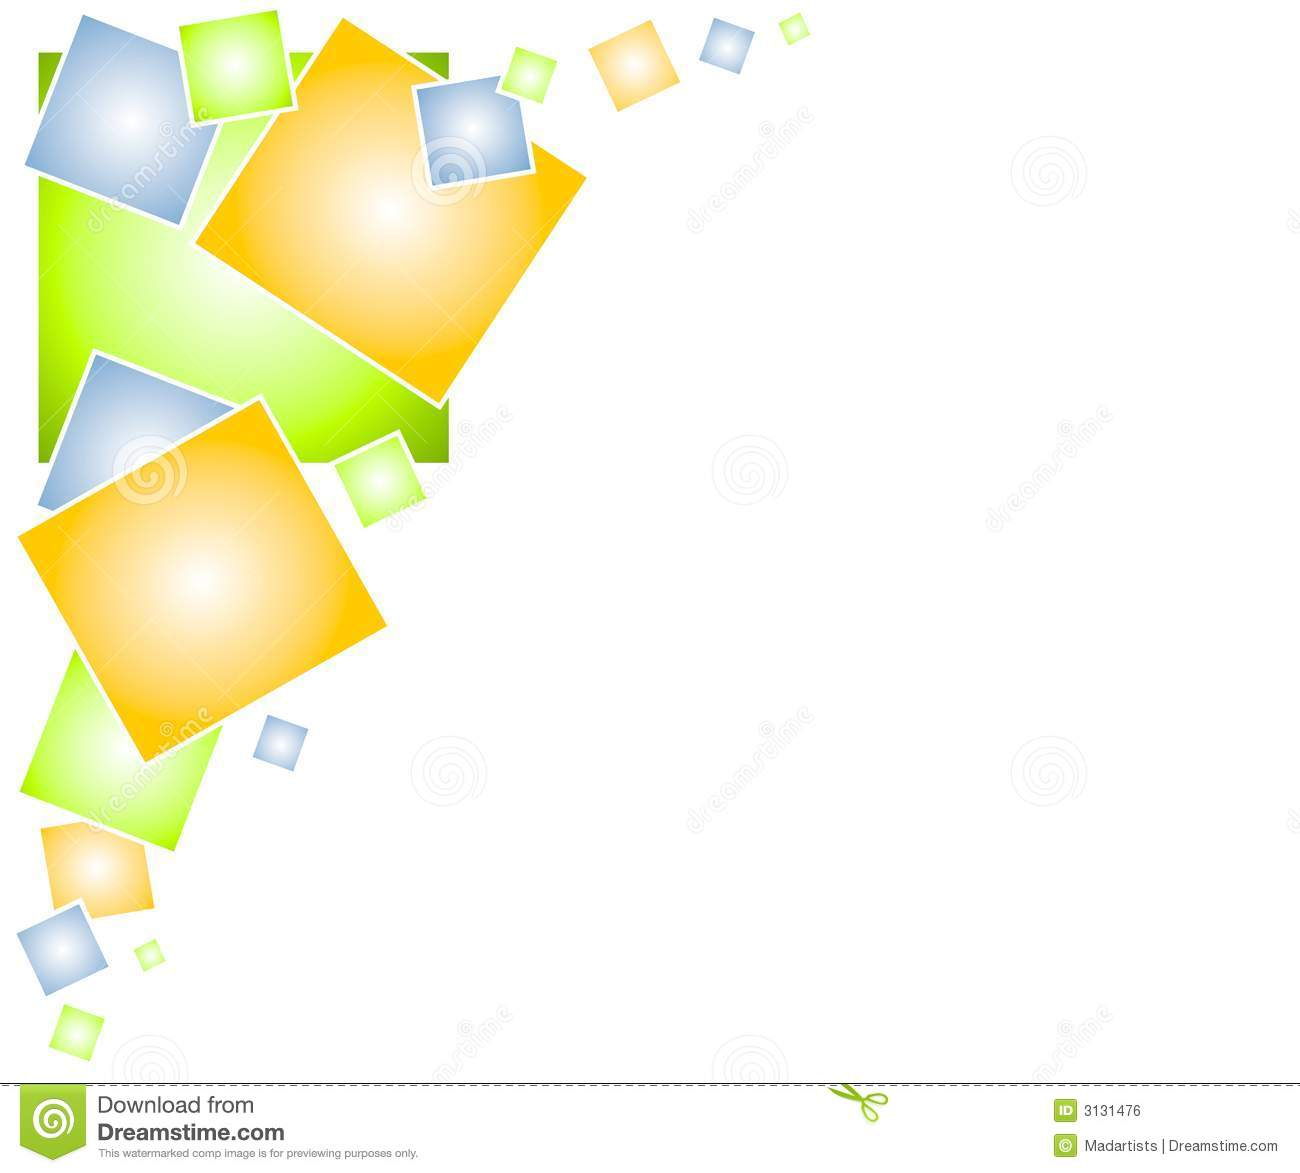 Squares Web Page Background 2 Stock Illustration - Illustration of ... b2bbddd187d5